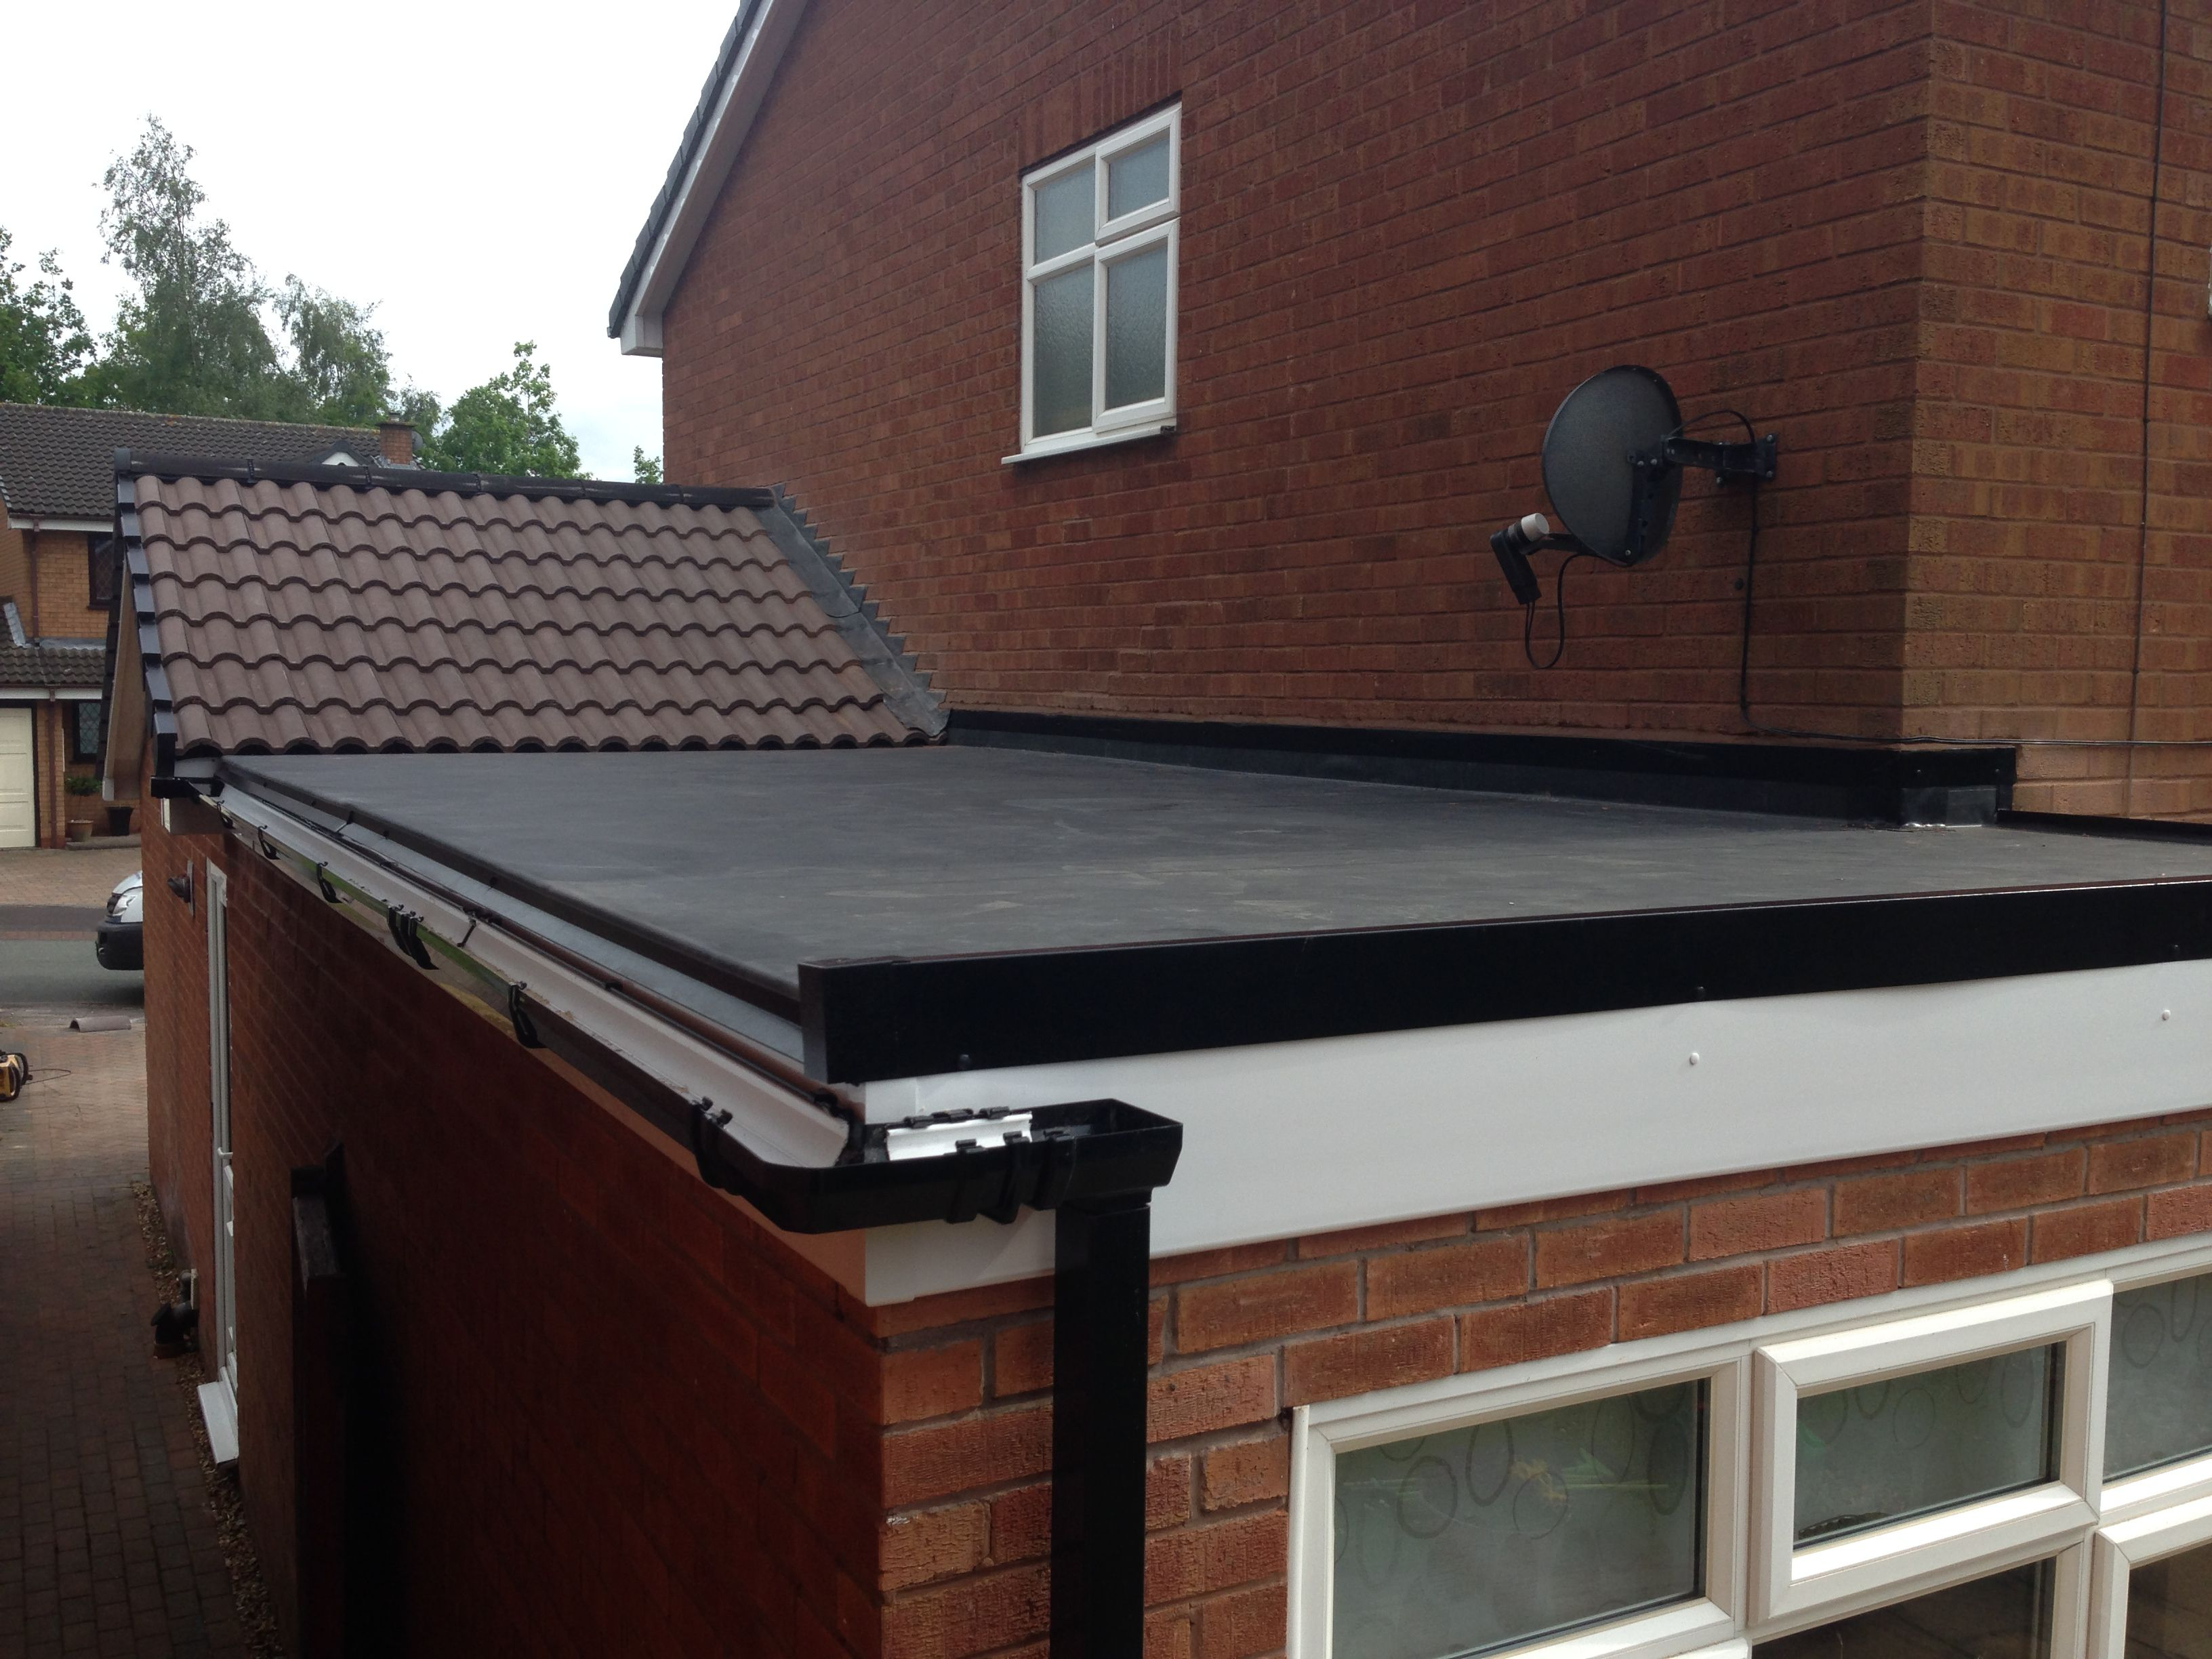 ROOFING: Firestone Rubber EPDM